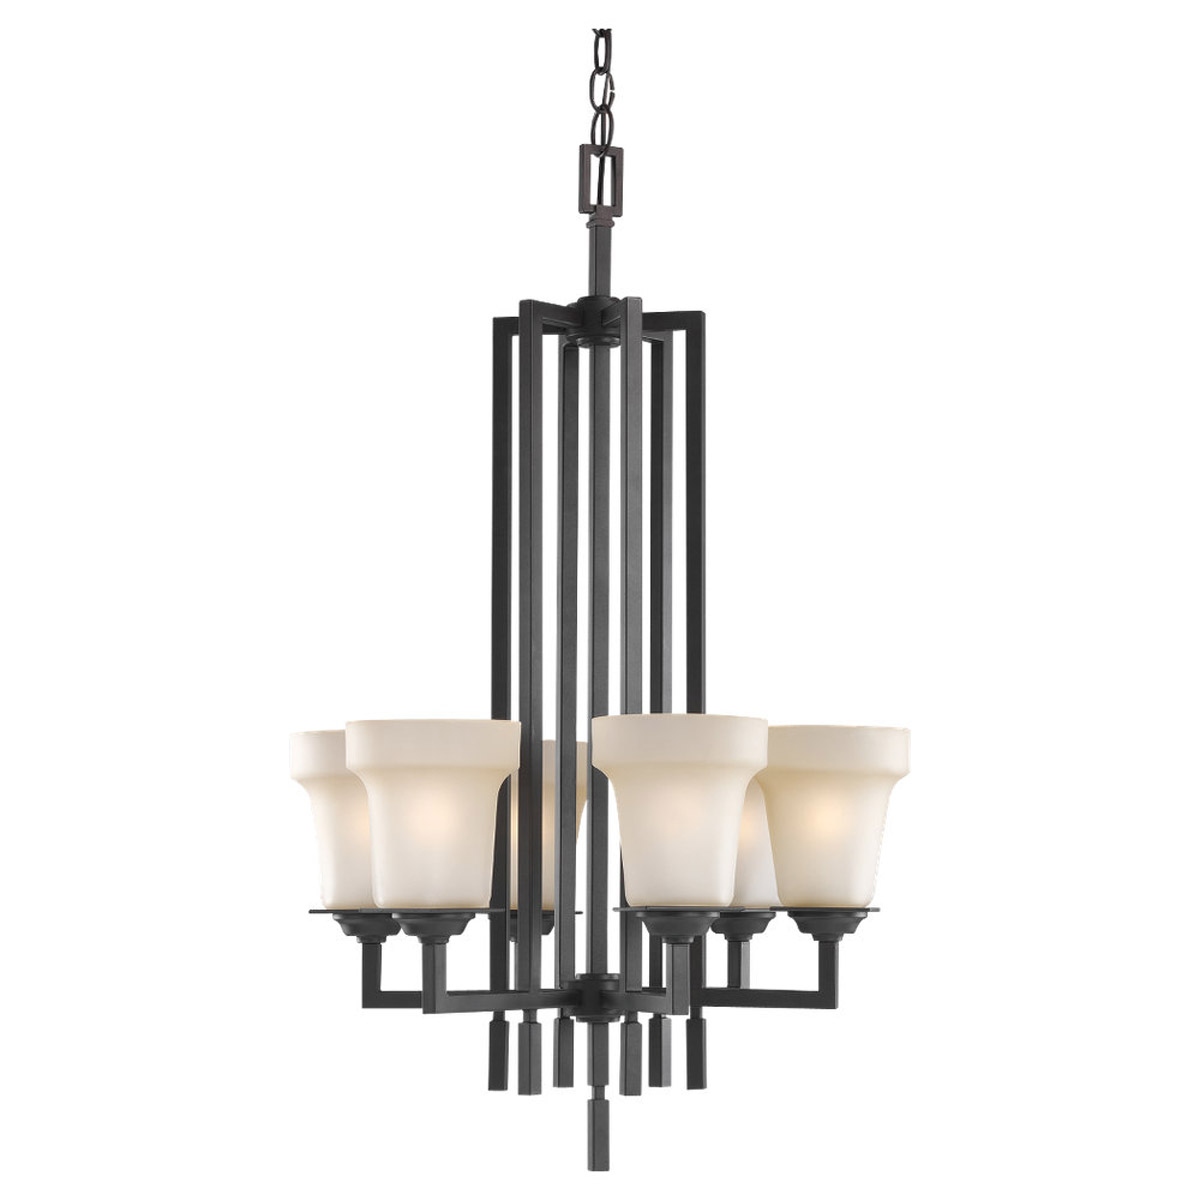 Sea Gull Lighting Cardwell 6 Light Hall / Foyer Pendant in Misted Bronze 51630-814 photo